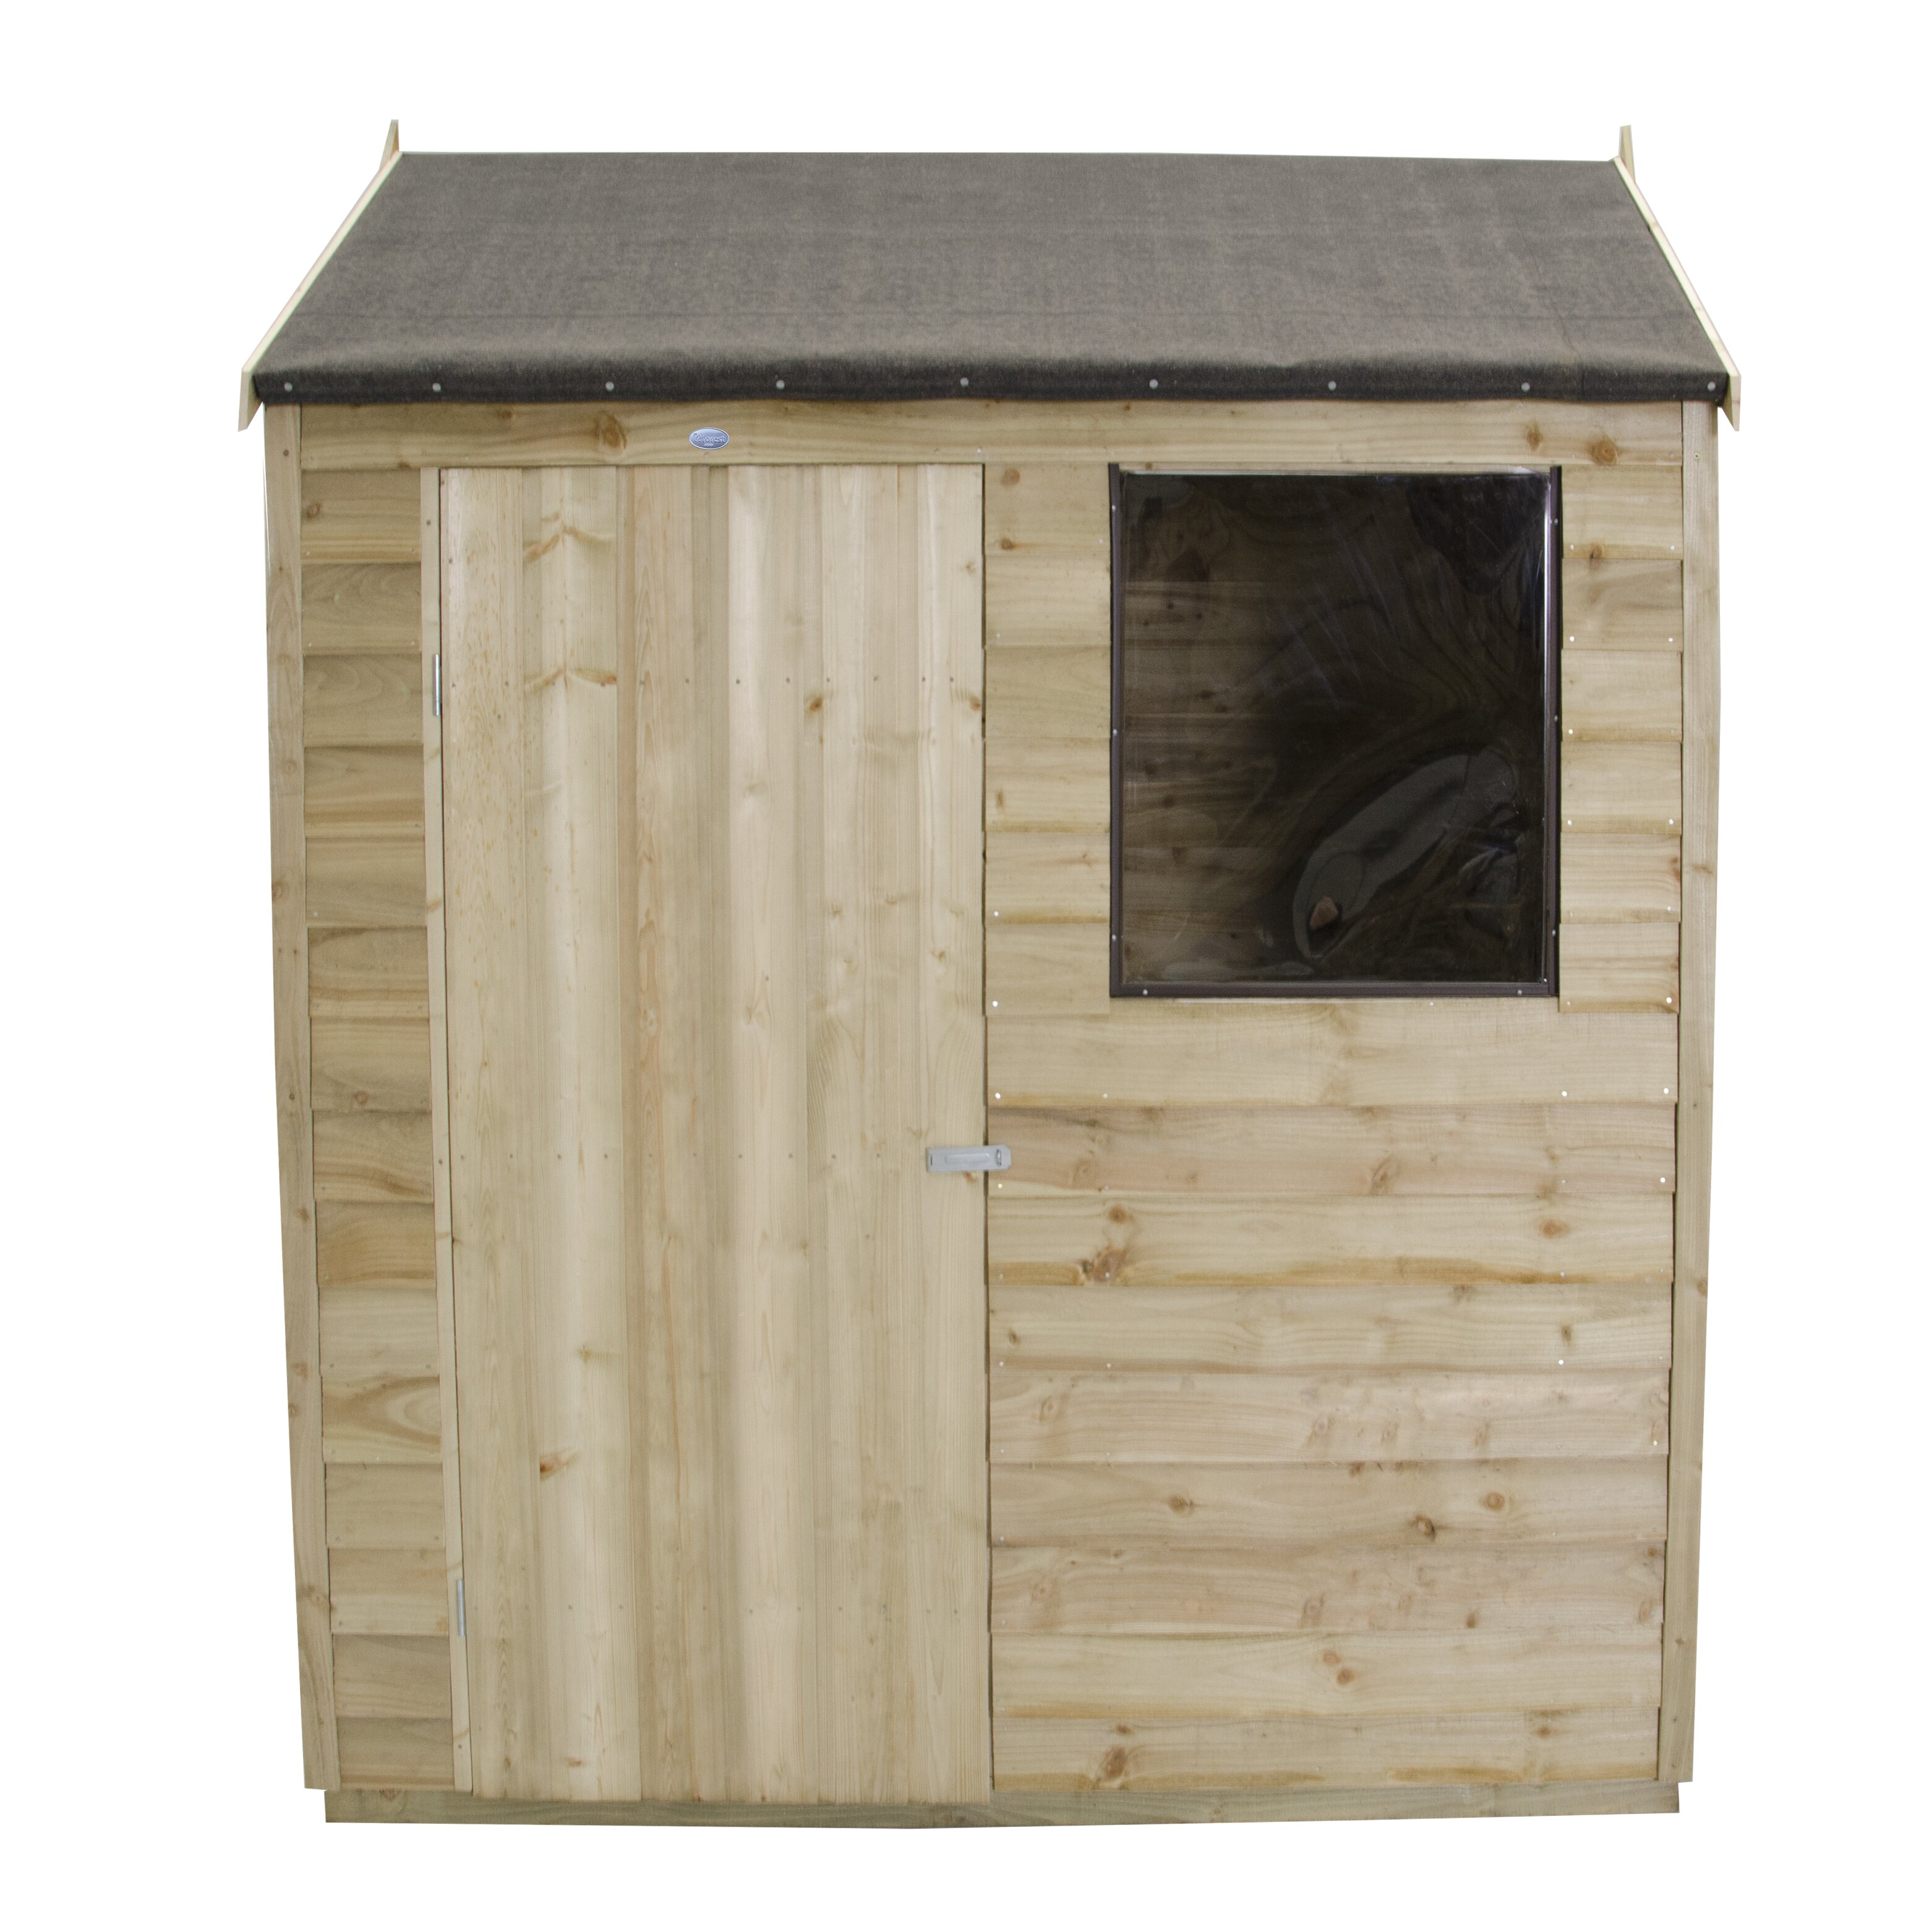 forest garden 6 x 4 wooden storage shed wayfair uk. Black Bedroom Furniture Sets. Home Design Ideas